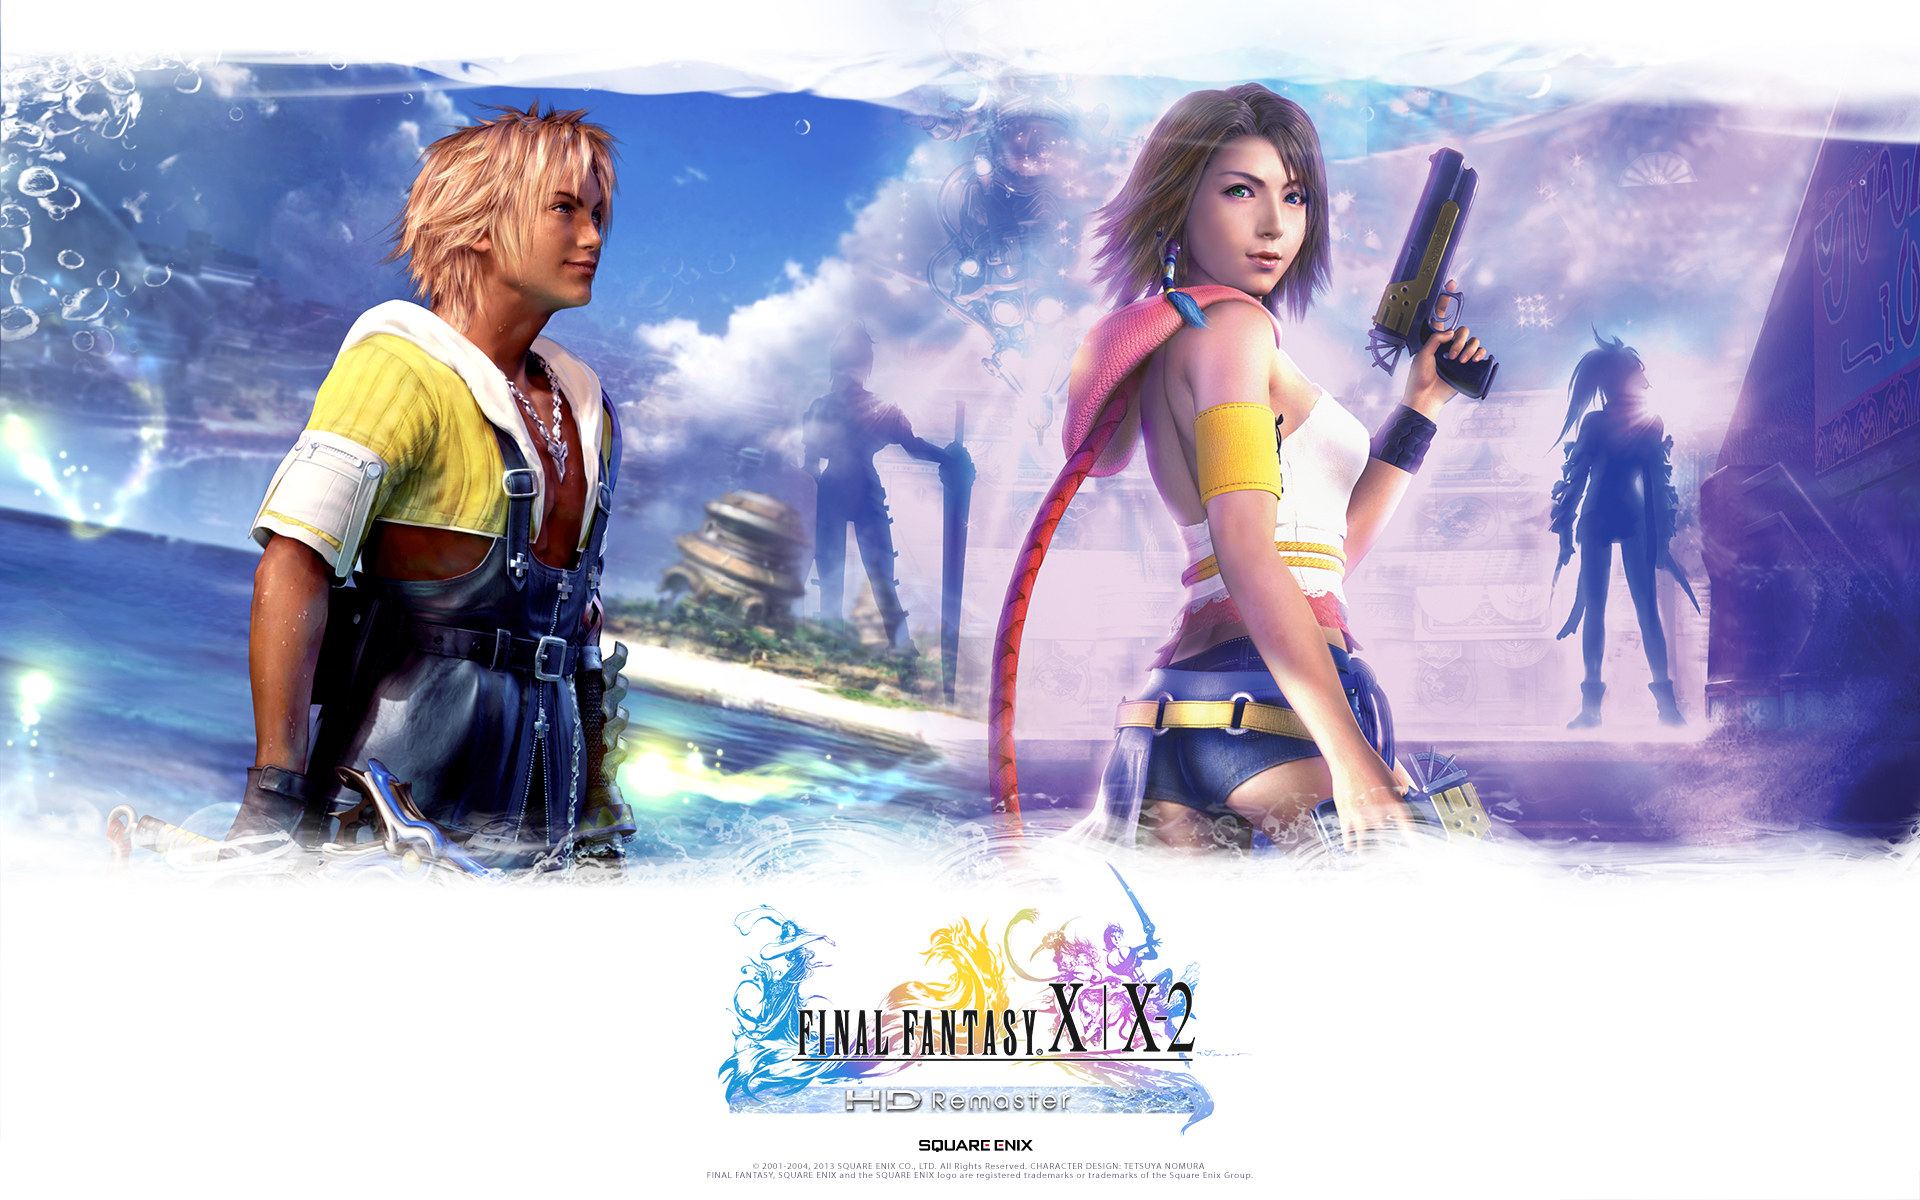 Free Download Final Fantasy Xx 2 Hd Remaster Wallpapers The Final